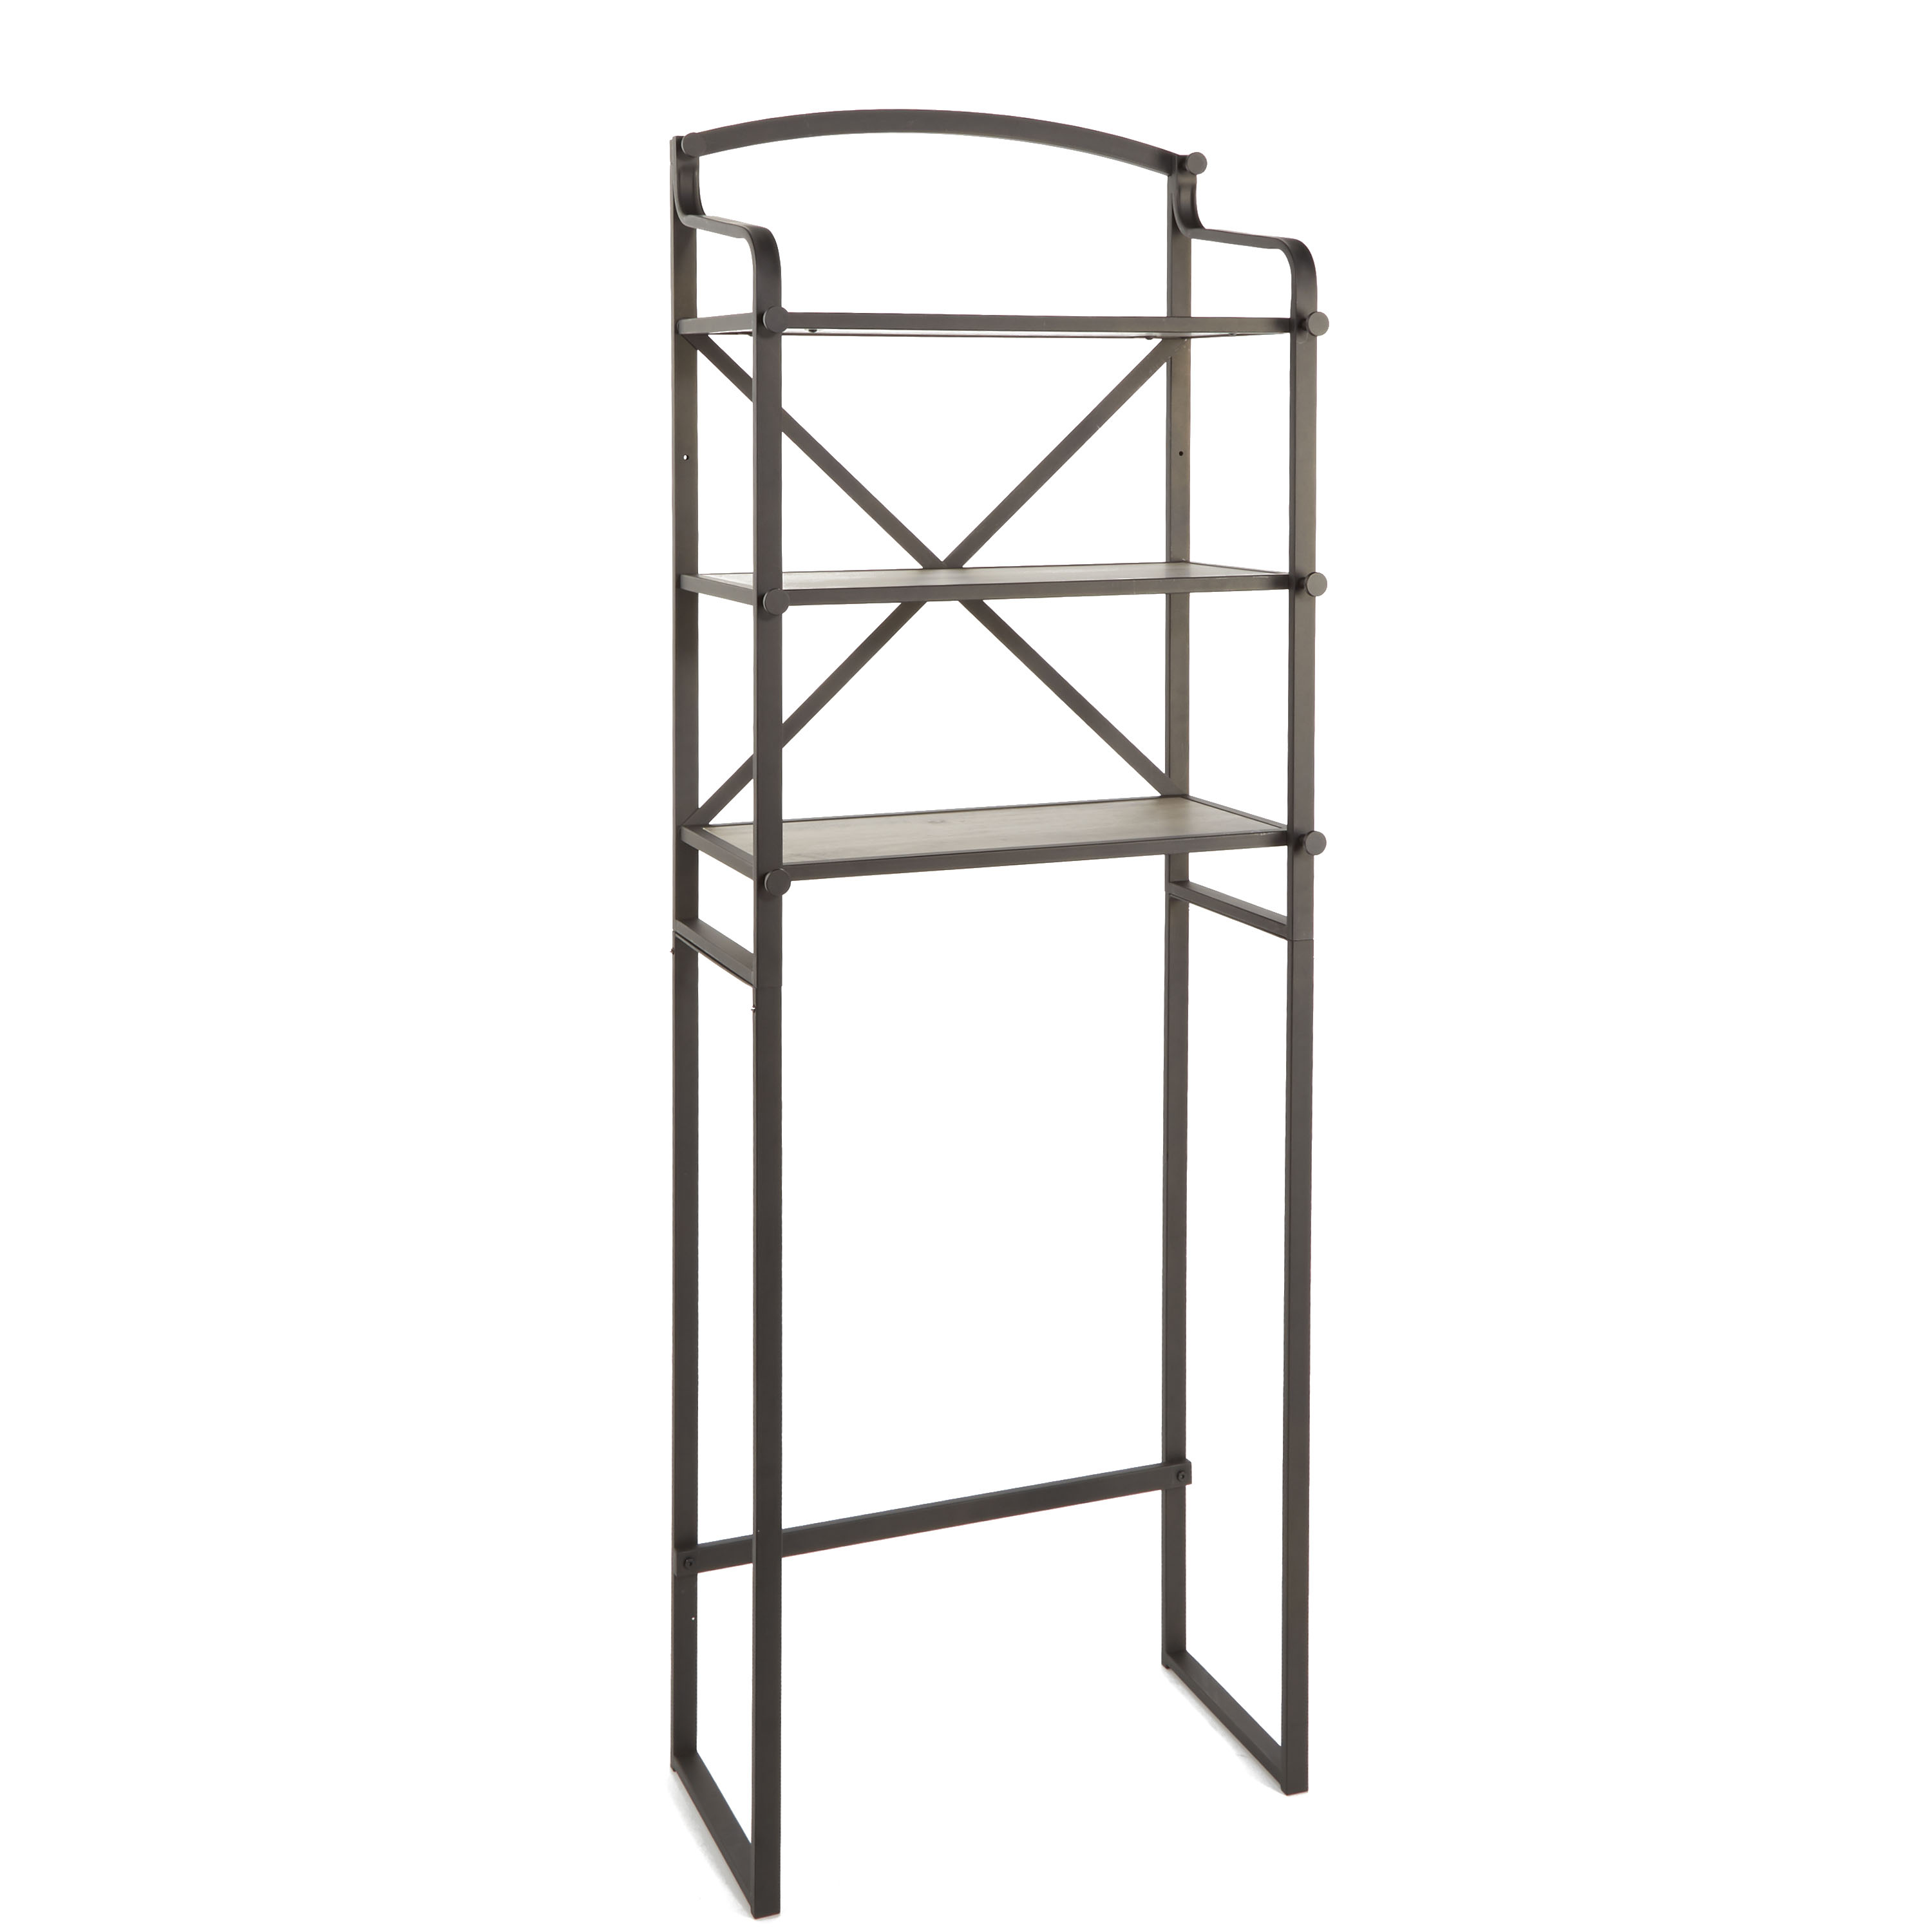 Better Homes & Gardens Rustic Farmhouse 3-Tier Bathroom Storage Over the Toilet Space Saver, Bronze & Rustic Gray